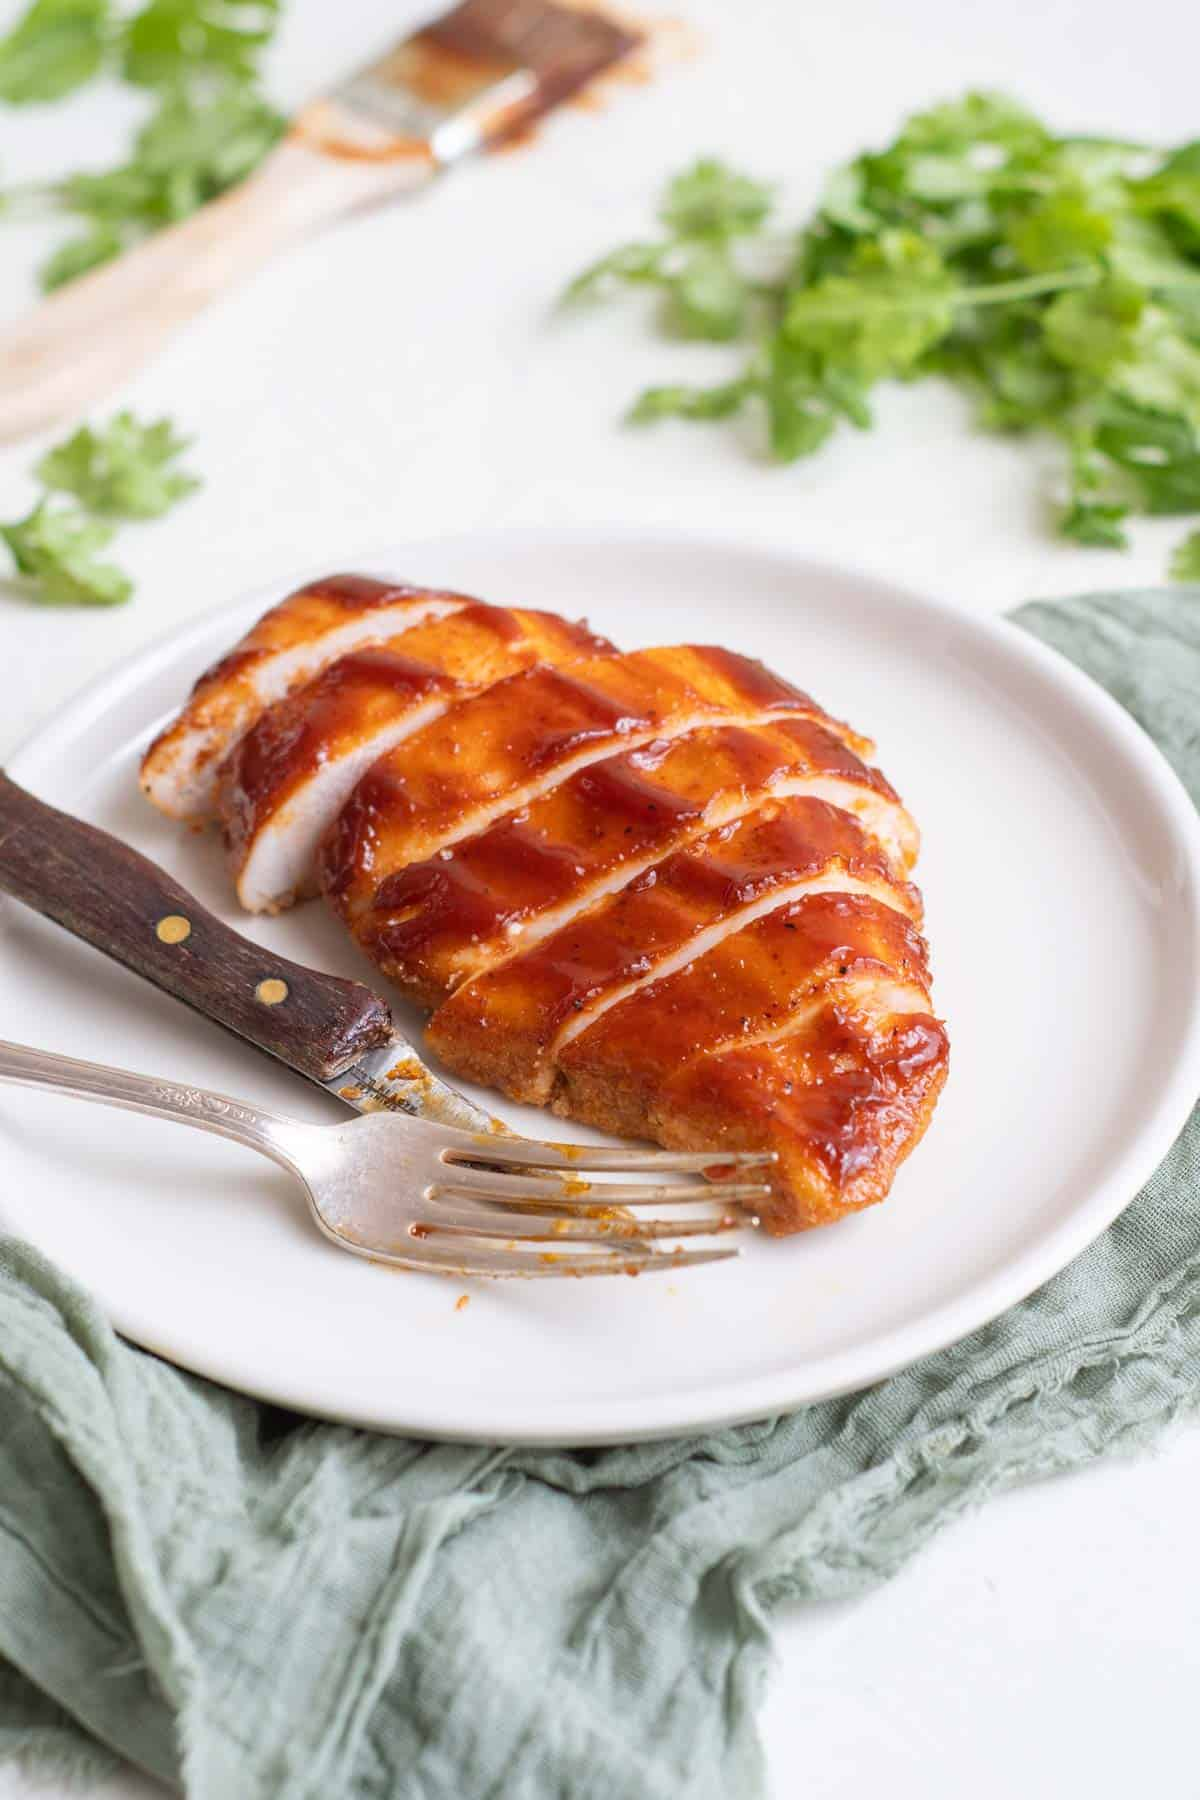 bbq chicken breast on a white plate with a fork and a knife